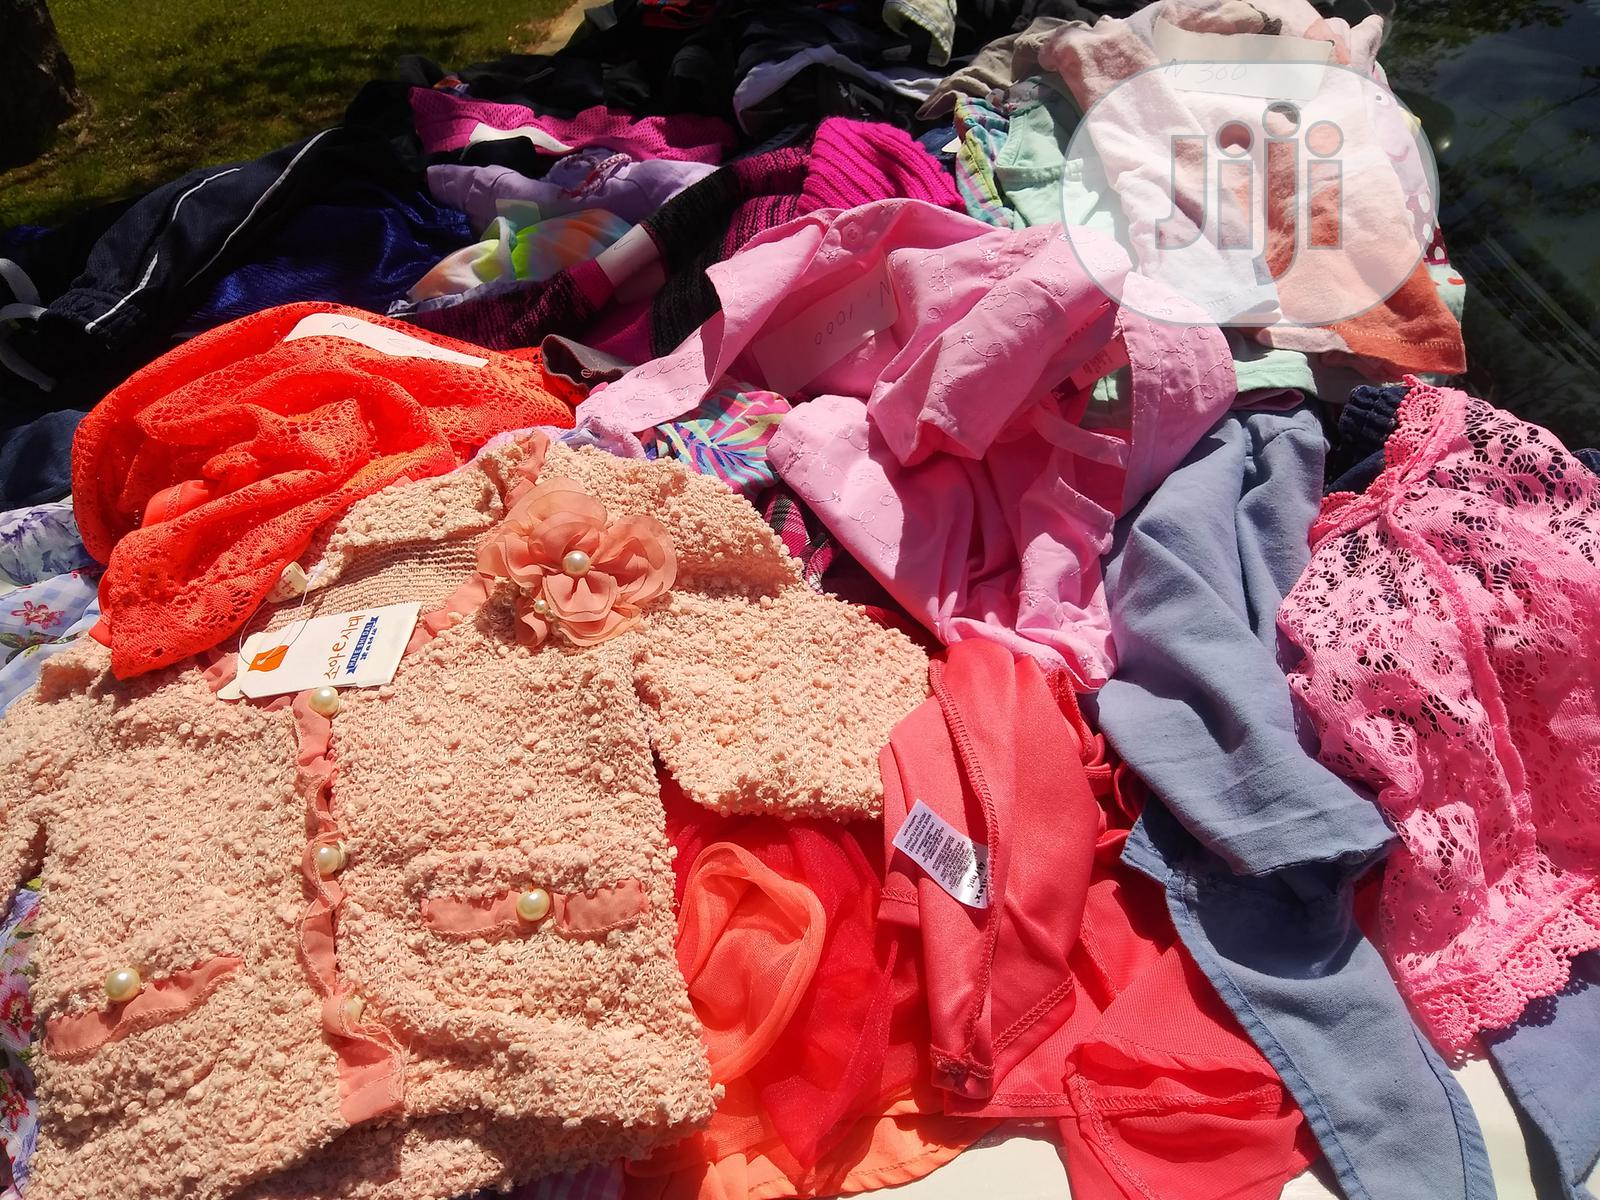 Archive: Mixed Lot Of New And Fairly Used Clothings Women, Men, Children